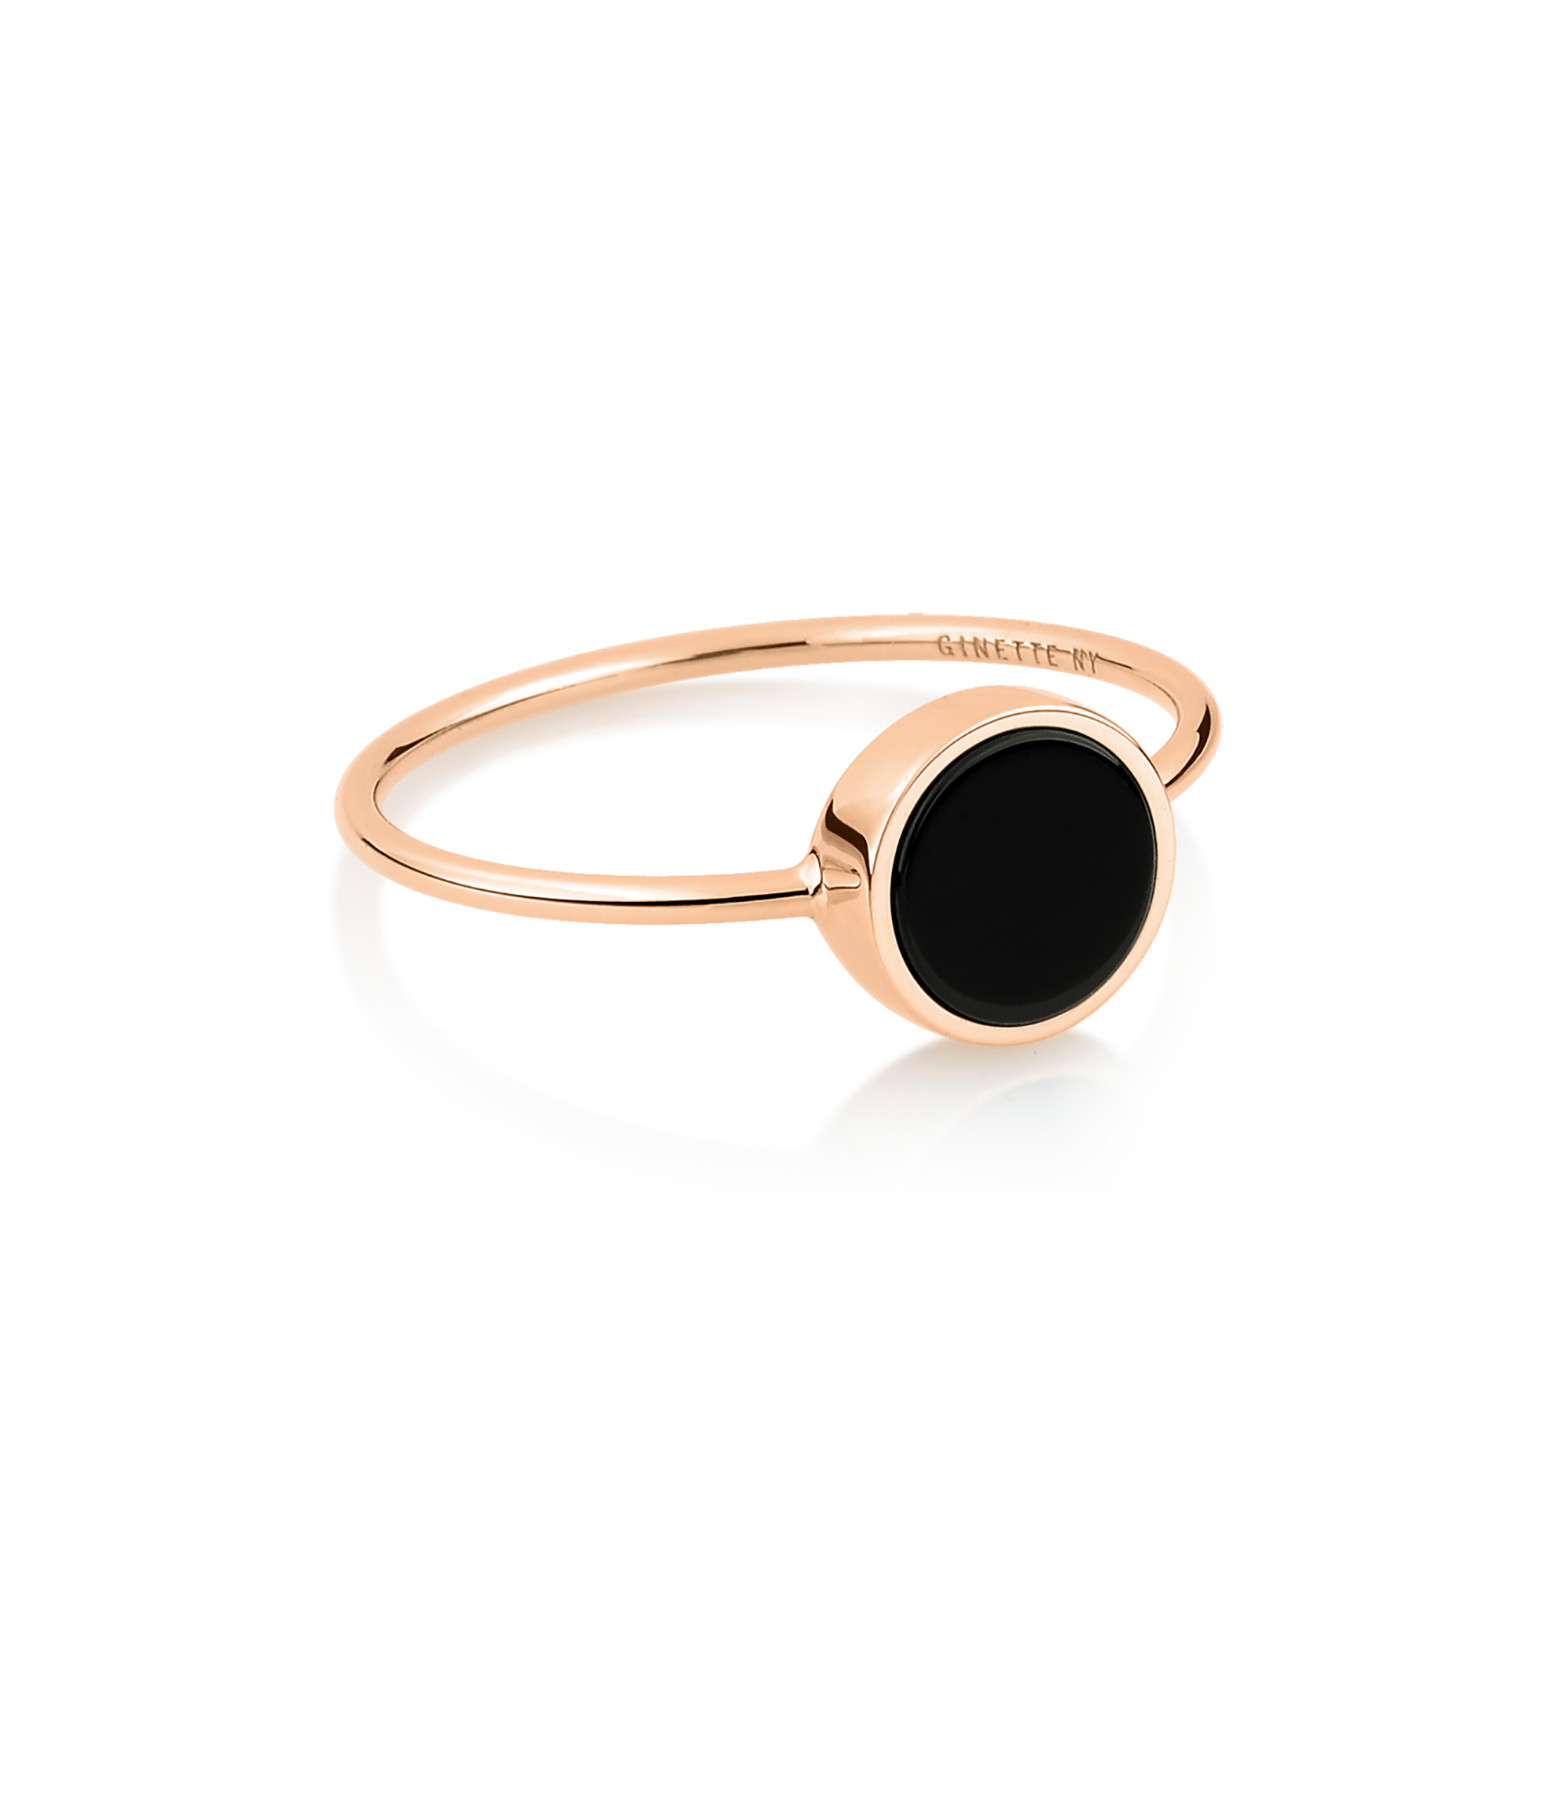 GINETTE NY - Bague Ever Mini Disc Or Rose Onyx